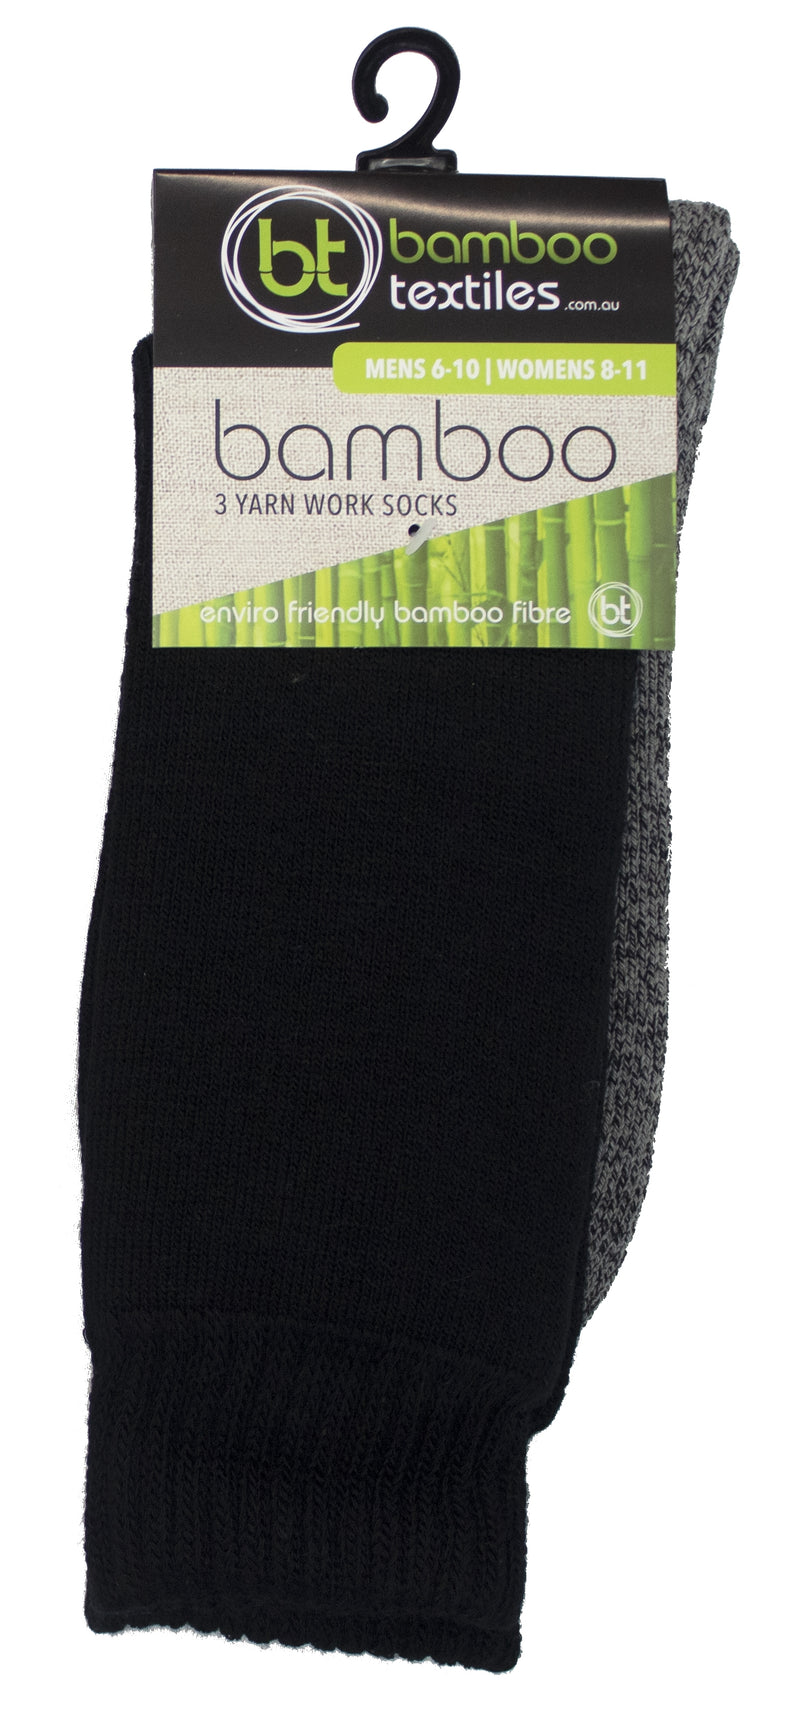 Bamboo 3 Yarn Work Socks